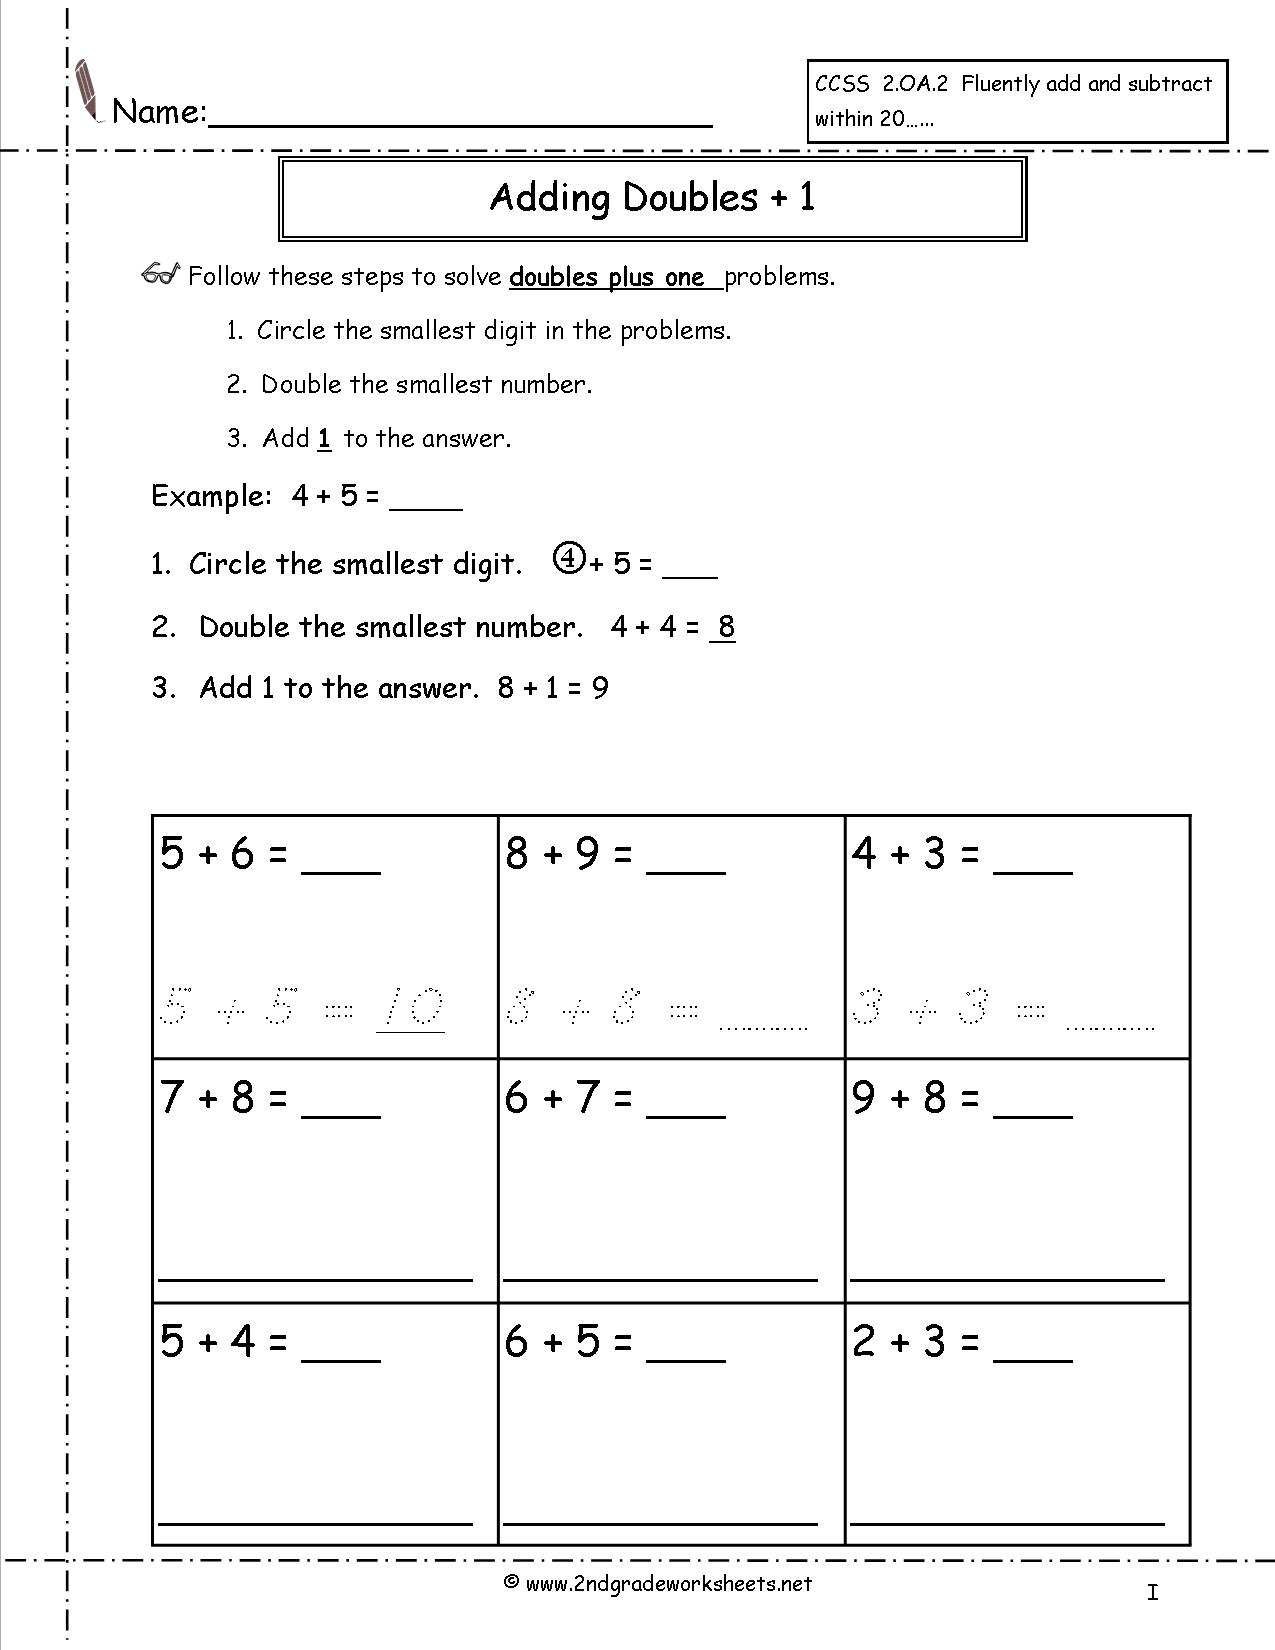 Doubles Plus One Worksheets Free Library Download And Math